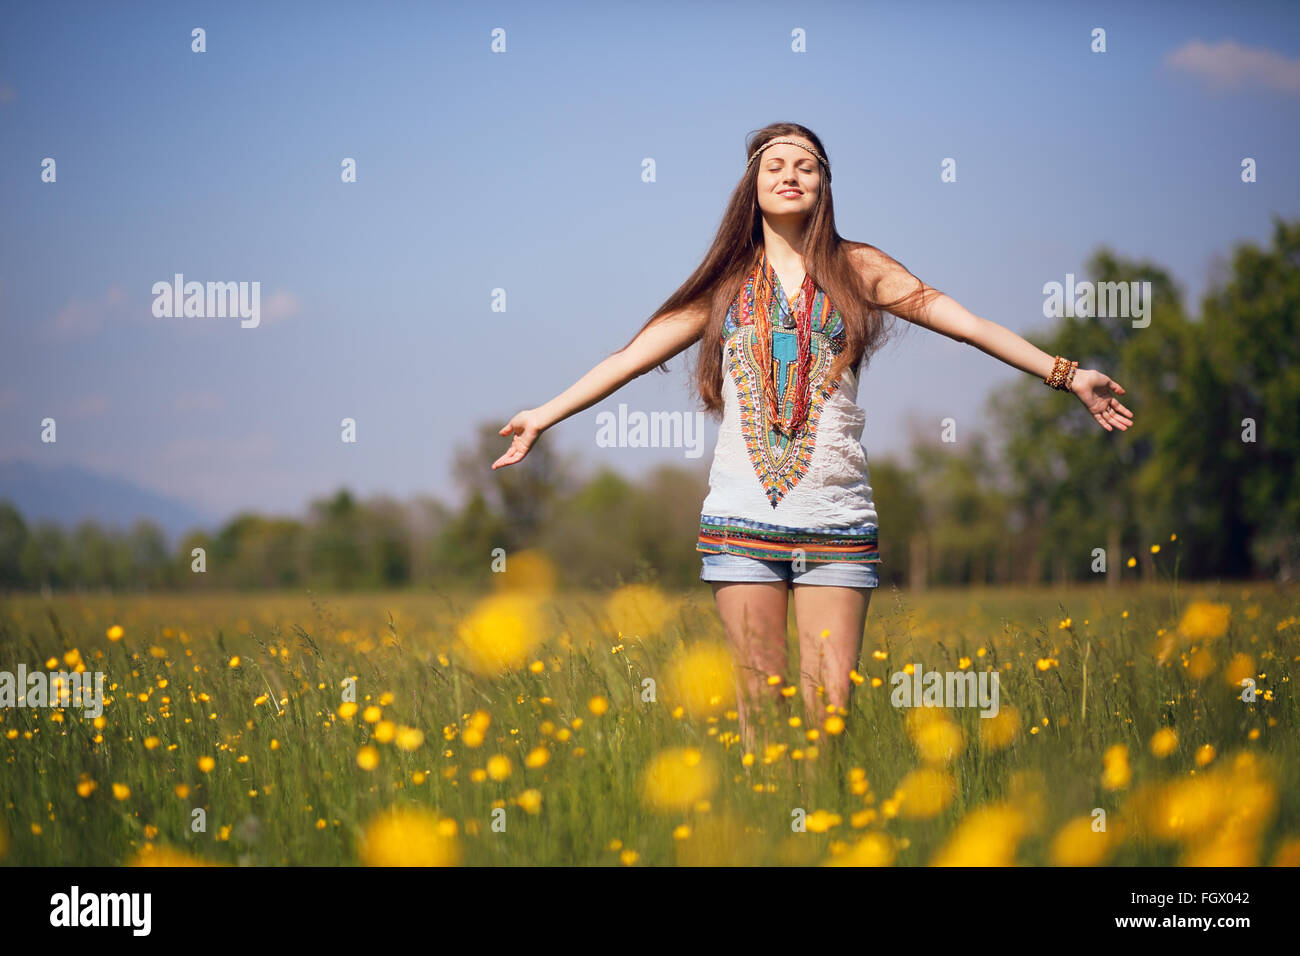 Free and smiling hippie in summer meadow. Vintage photo effect - Stock Image